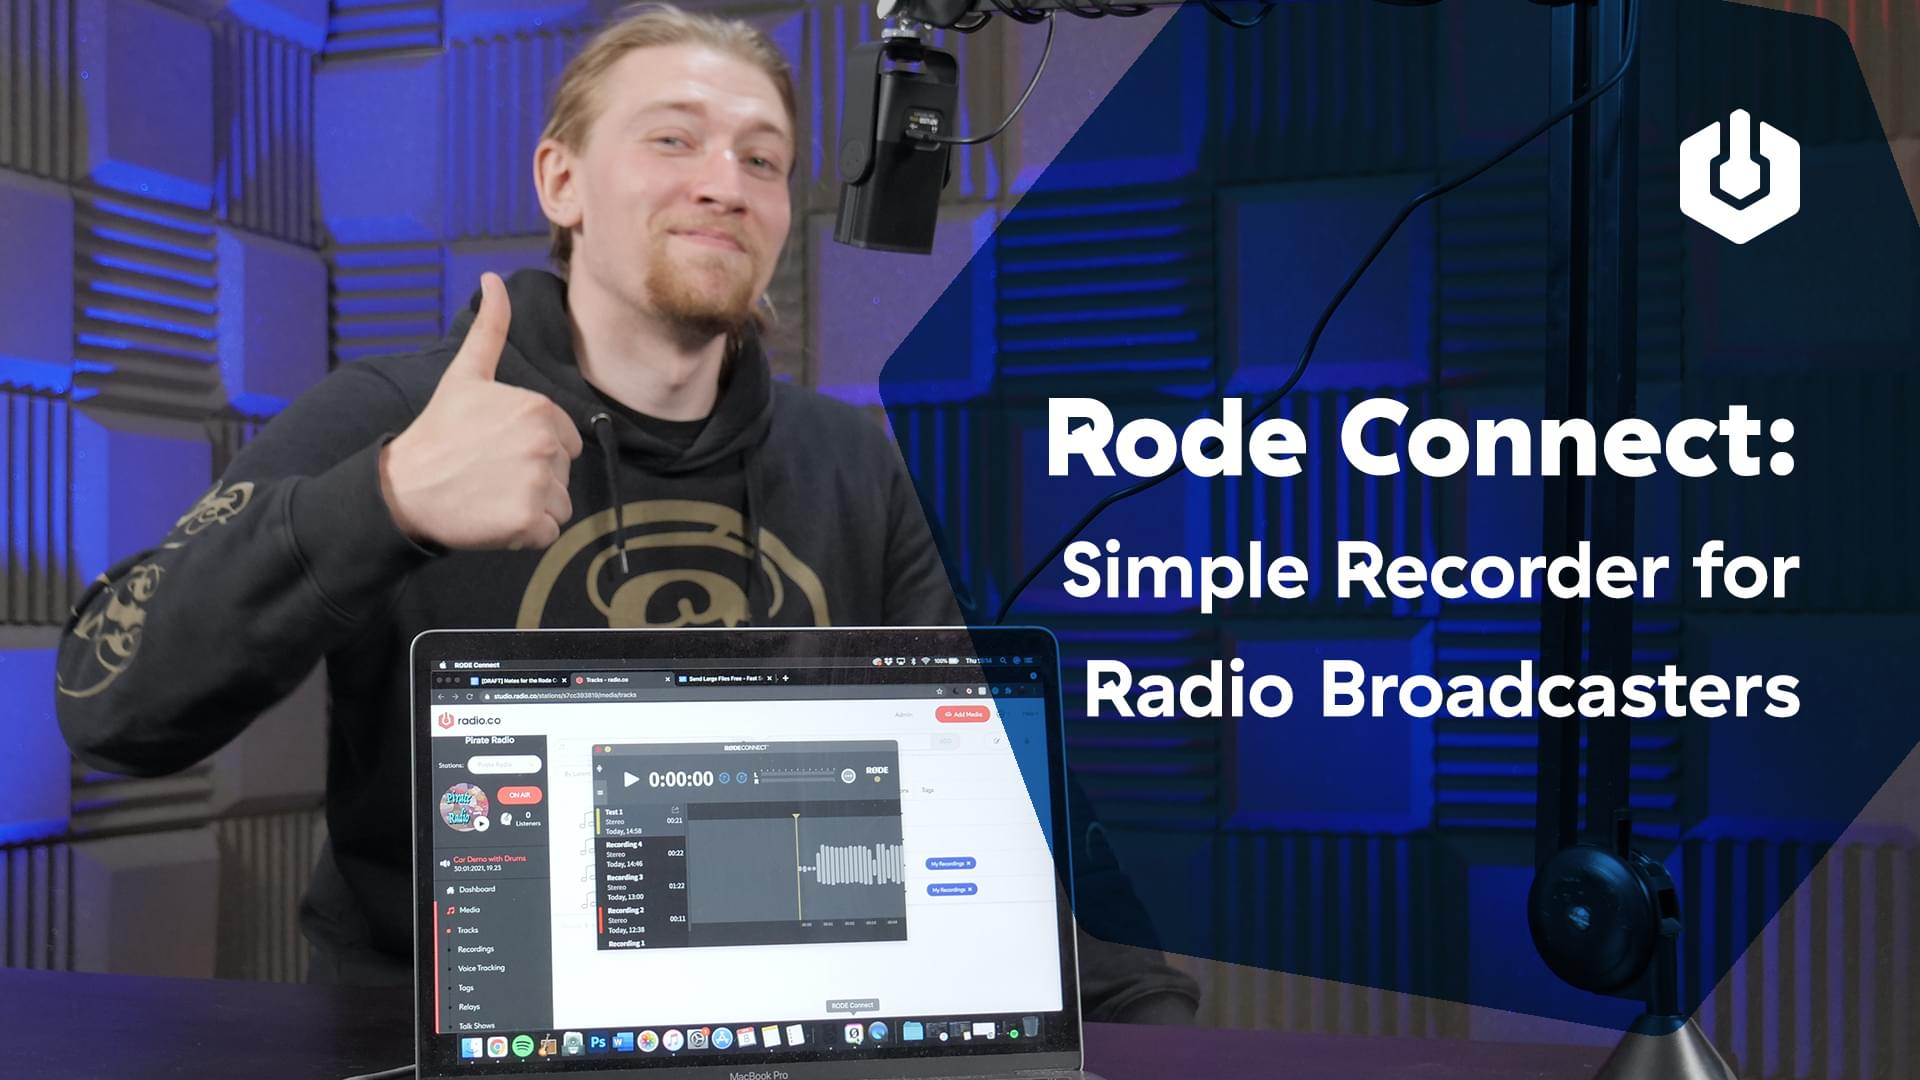 Rode connect thumbnail